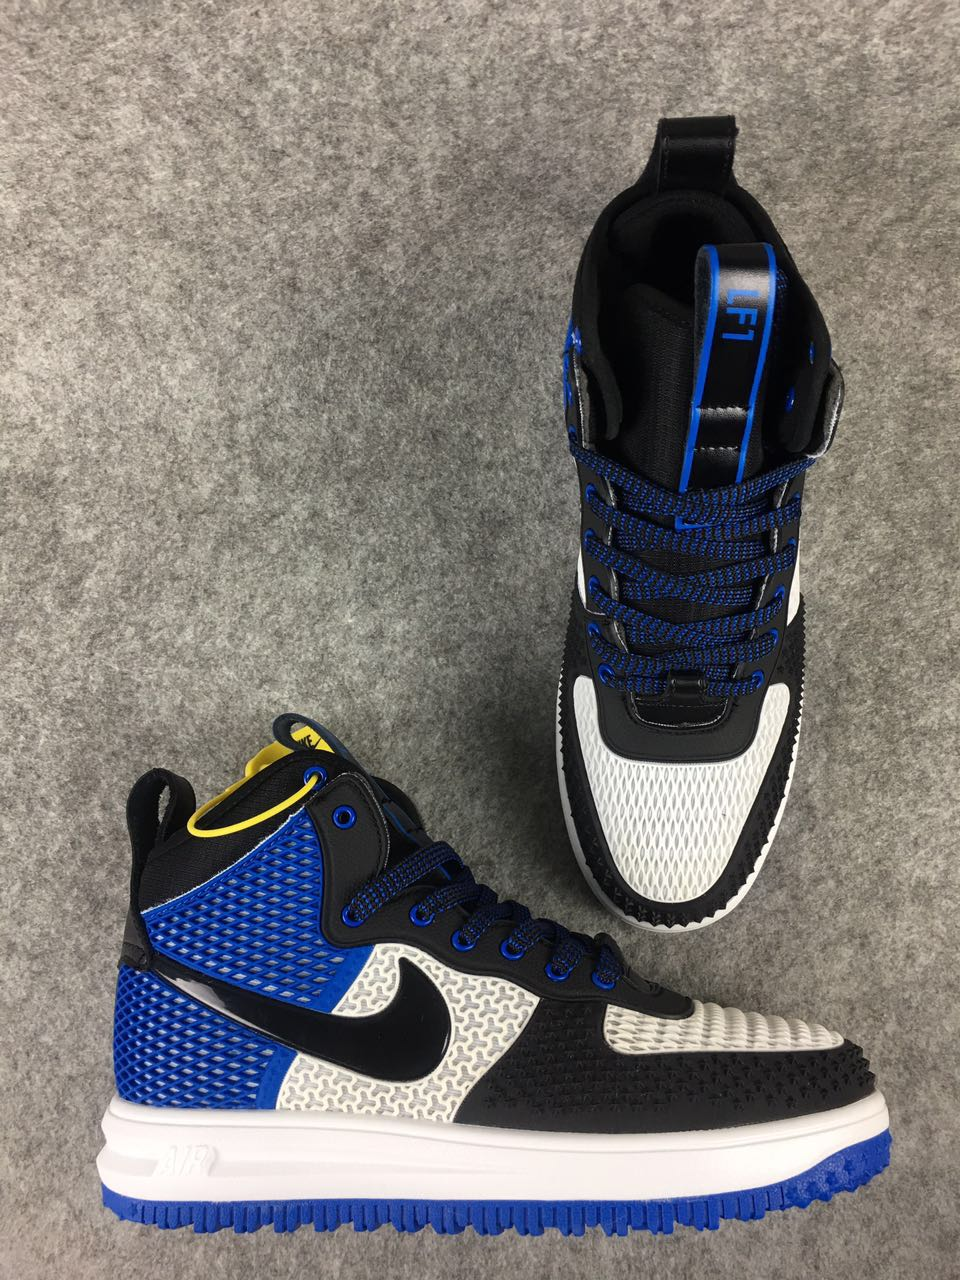 Nike Lunar Force 1 Nano Black Royal Blue White Shoes